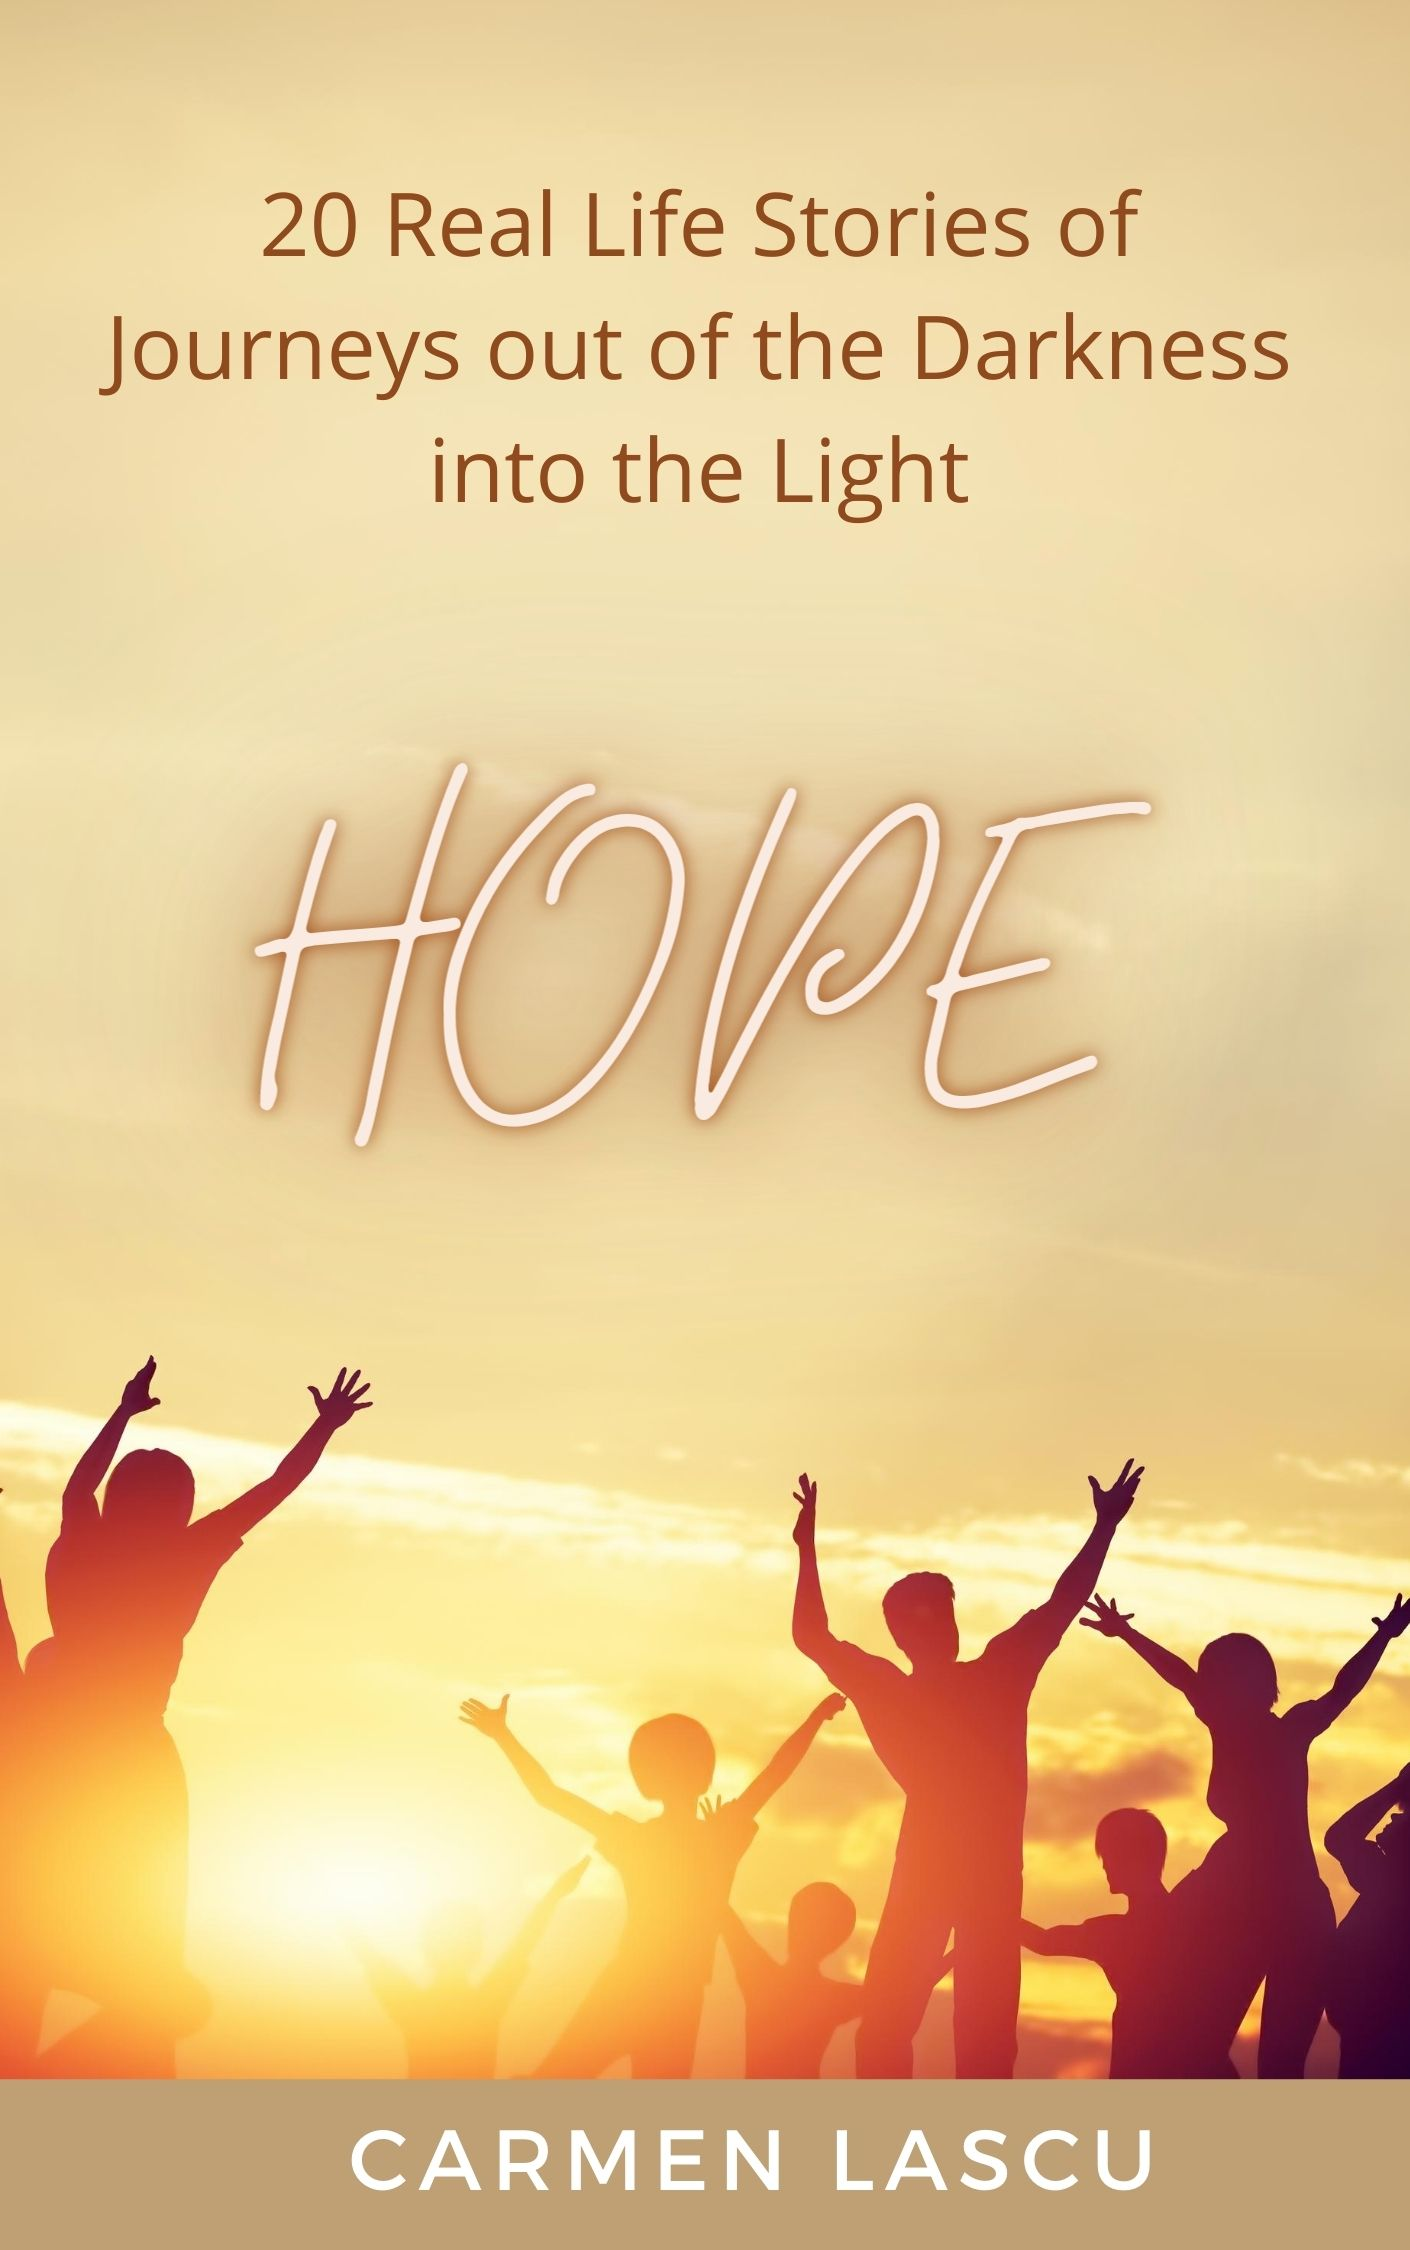 HOPE book cover photo jpg